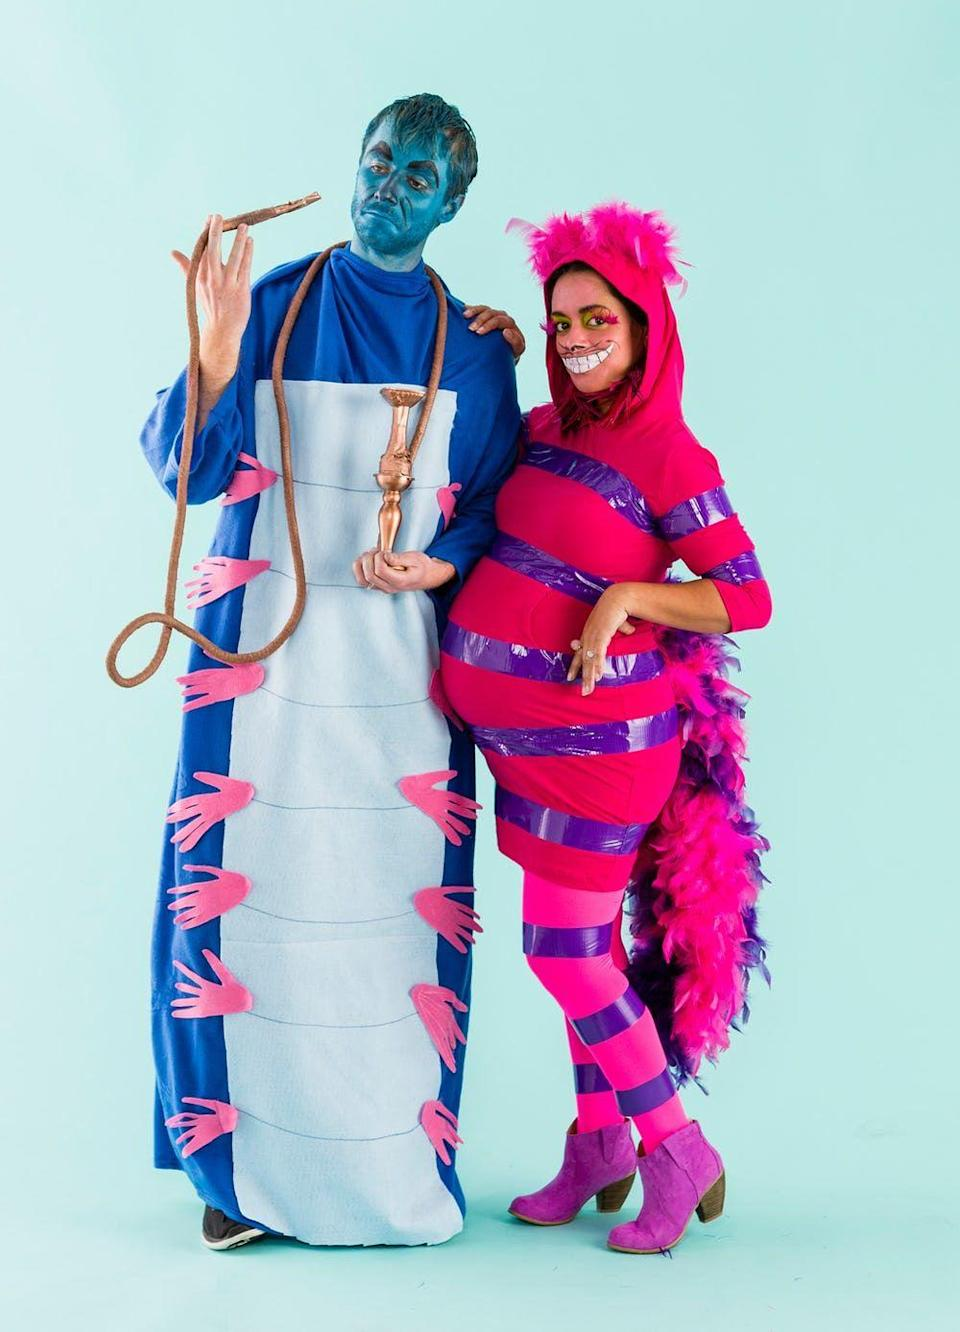 """<p>Looking for a clever way to make use of that old blue Snuggie? This caterpillar costume is for you! Just add a felt strip down the center to define the belly and glue on a bunch of hot pink hand shapes. To make it a <a href=""""https://www.countryliving.com/diy-crafts/g32906192/diy-group-halloween-costume-ideas/"""" rel=""""nofollow noopener"""" target=""""_blank"""" data-ylk=""""slk:group Halloween costume"""" class=""""link rapid-noclick-resp"""">group Halloween costume</a>, recruit a friend to dress up as the Cheshire Cat (see <a href=""""https://www.countryliving.com/diy-crafts/g21527022/cat-makeup-ideas/"""" rel=""""nofollow noopener"""" target=""""_blank"""" data-ylk=""""slk:Halloween cat makeup ideas"""" class=""""link rapid-noclick-resp"""">Halloween cat makeup ideas</a>). Just dress in head-to-toe pink and add stripes with purple duct tape. A feather boa tail finishes the look. </p><p><strong>Get the tutorial at <a href=""""https://www.brit.co/youll-go-mad-for-this-alice-in-wonderland-halloween-costume/"""" rel=""""nofollow noopener"""" target=""""_blank"""" data-ylk=""""slk:Brit + Co"""" class=""""link rapid-noclick-resp"""">Brit + Co</a>. </strong></p><p><a class=""""link rapid-noclick-resp"""" href=""""https://www.amazon.com/Z-Blanket-Purple-Premium-Wearable/dp/B01KBNDBZG/?tag=syn-yahoo-20&ascsubtag=%5Bartid%7C10050.g.29343502%5Bsrc%7Cyahoo-us"""" rel=""""nofollow noopener"""" target=""""_blank"""" data-ylk=""""slk:SHOP BLUE SNUGGIES"""">SHOP BLUE SNUGGIES</a></p>"""